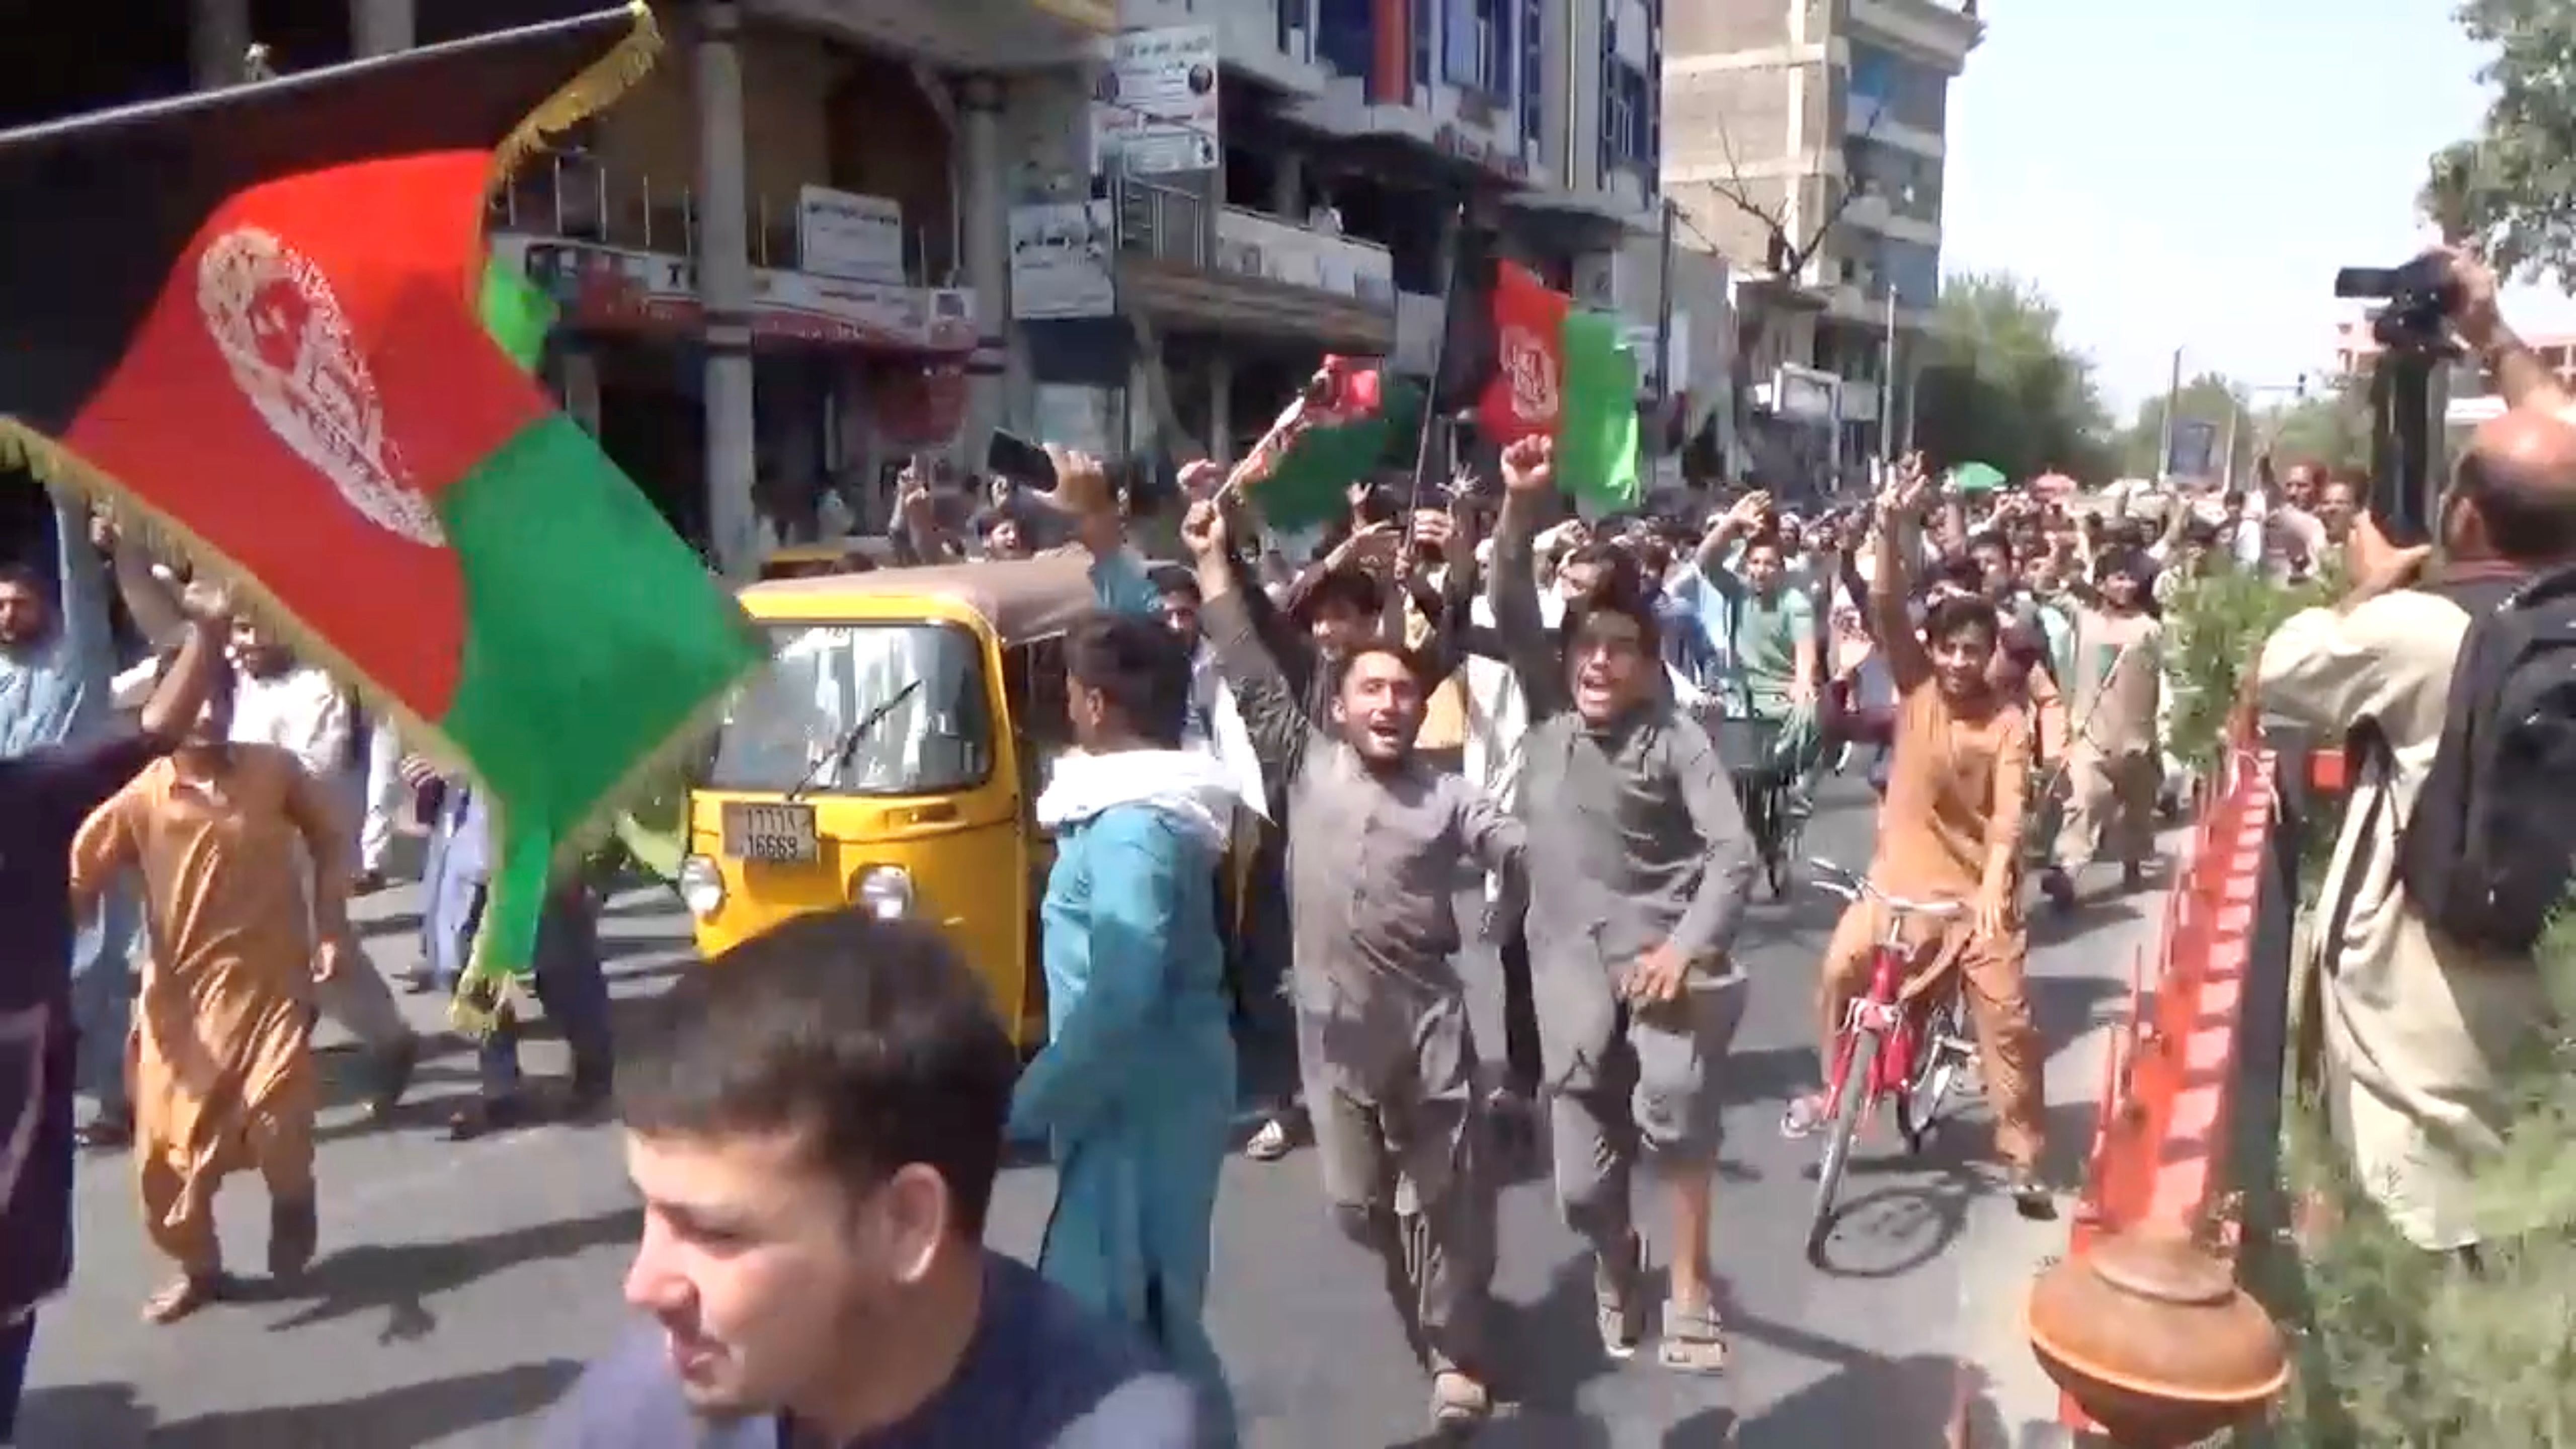 People carry Afghan flags as they take part in an anti-Taliban protest in Jalalabad, Afghanistan August 18, 2021 in this screen grab taken from a video. Pajhwok Afghan News/Handout via REUTERS